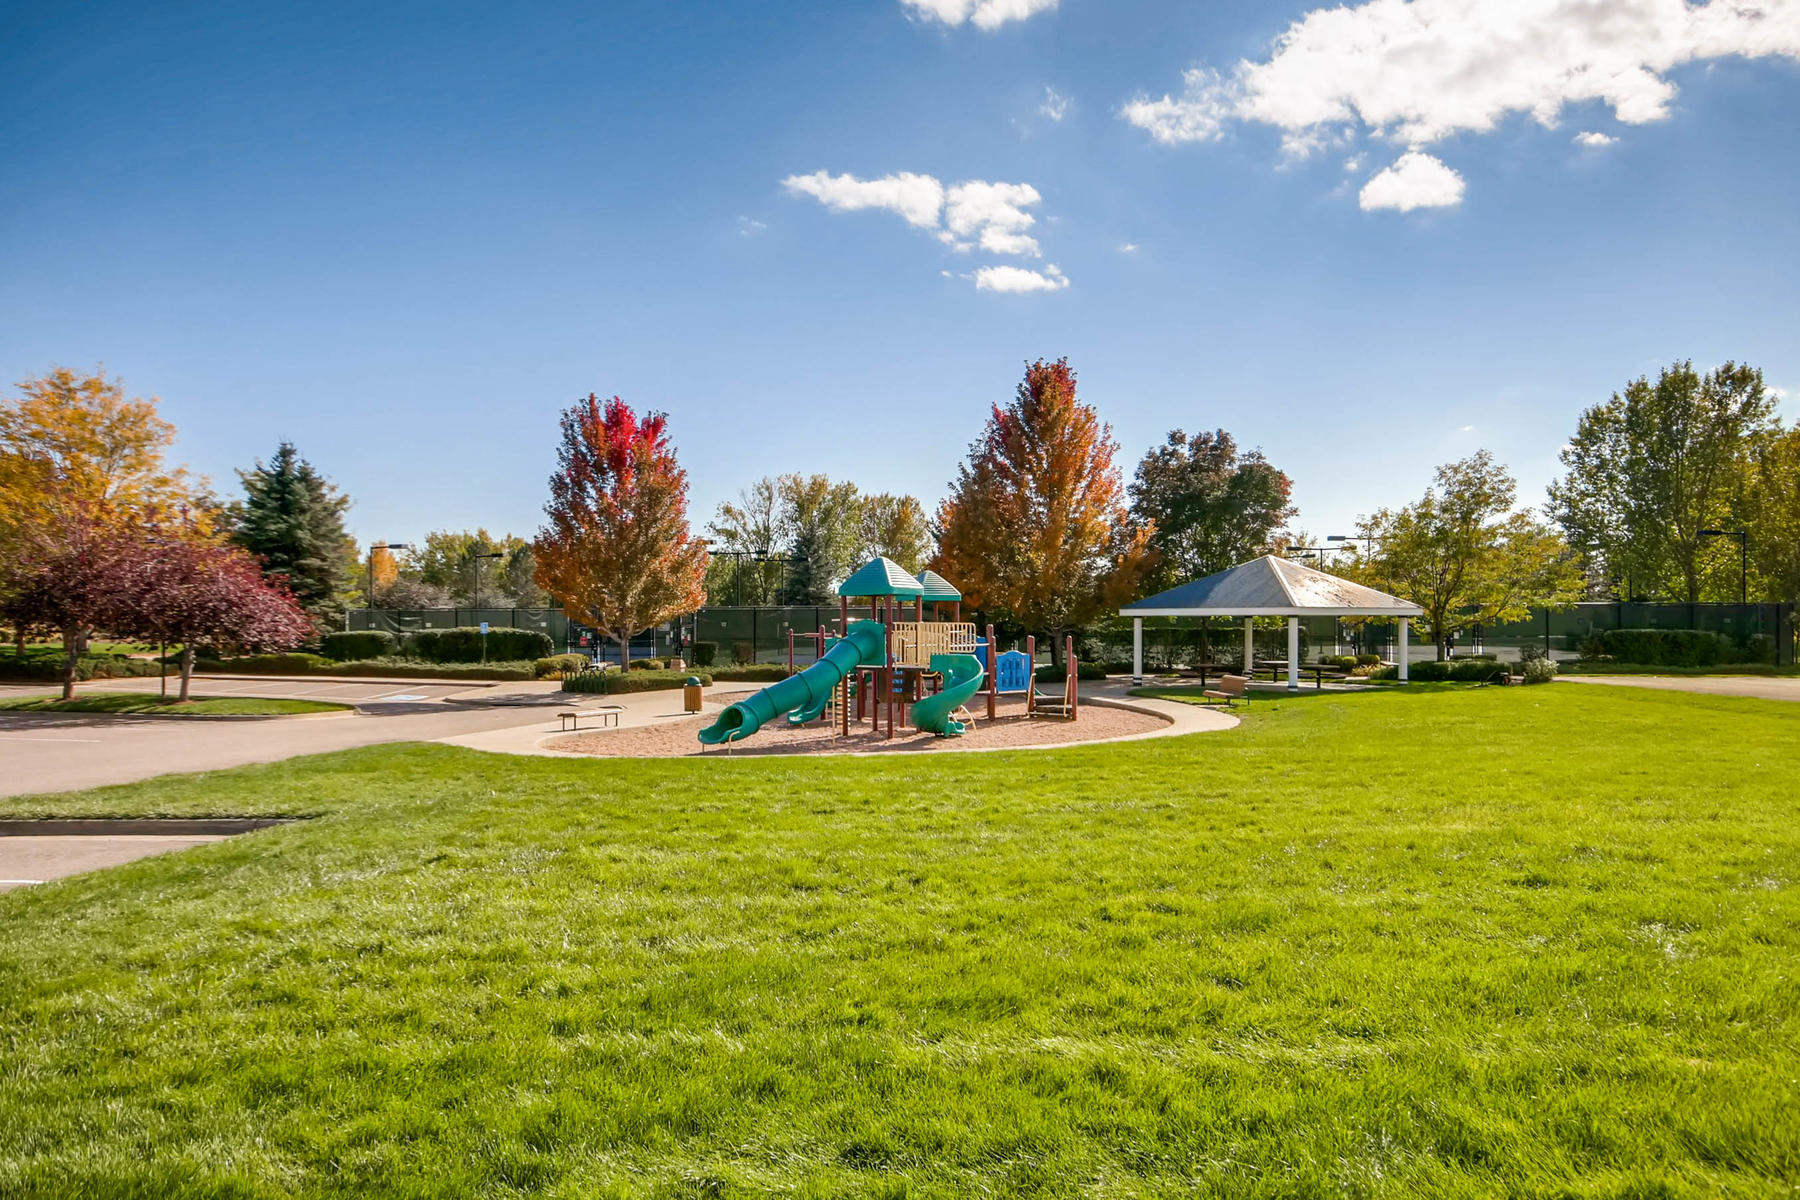 5700 S Jasper Way Centennial-MLS_Size-026-26-Playground and Tennis Courts-1800x1200-72dpi.jpg